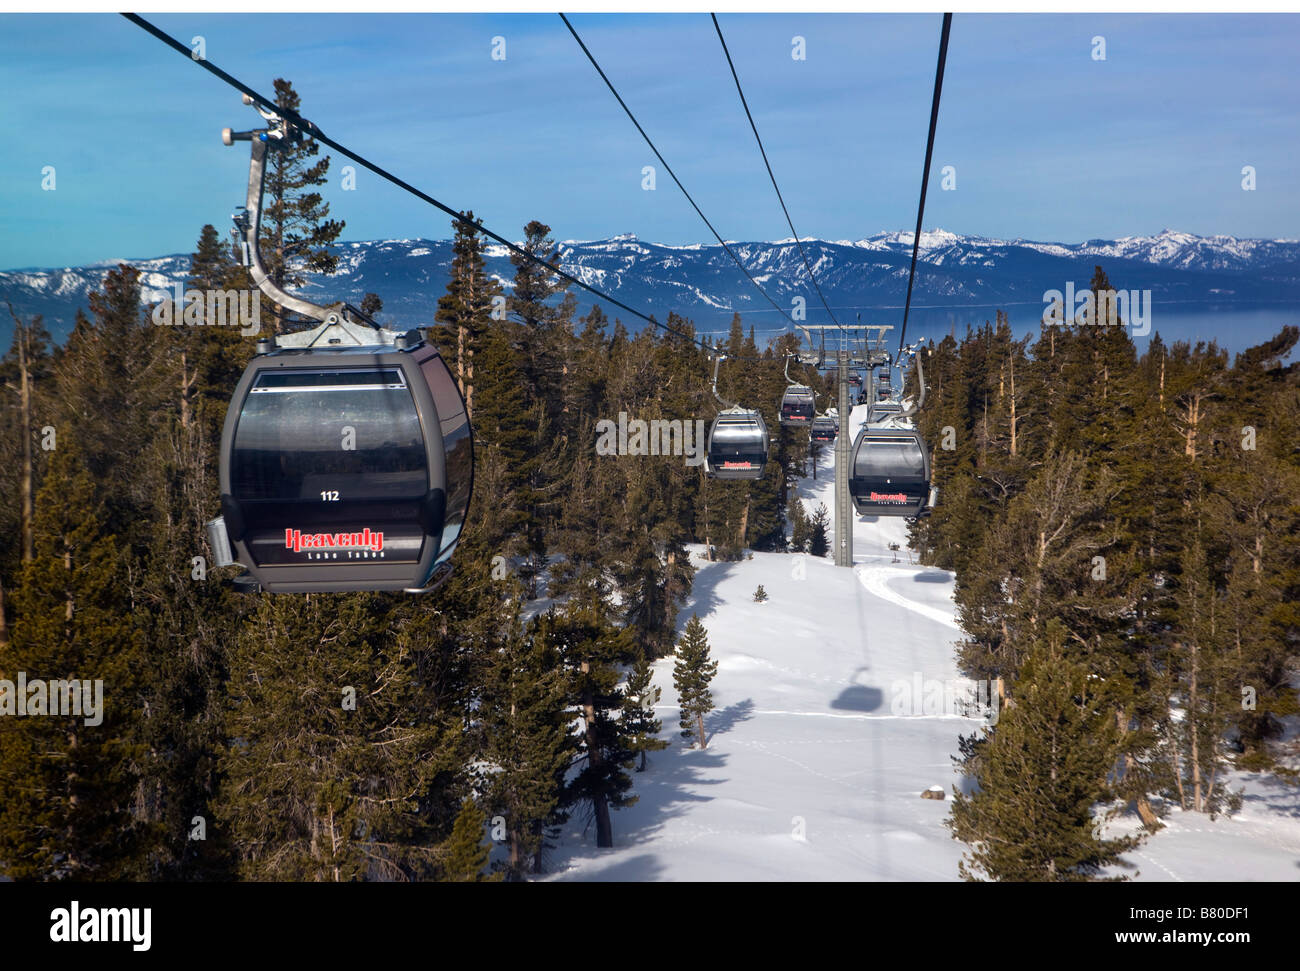 The Gondola at Heavenly takes skiiers and snowboards up the mountain from South Lake Tahoe California Stock Photo